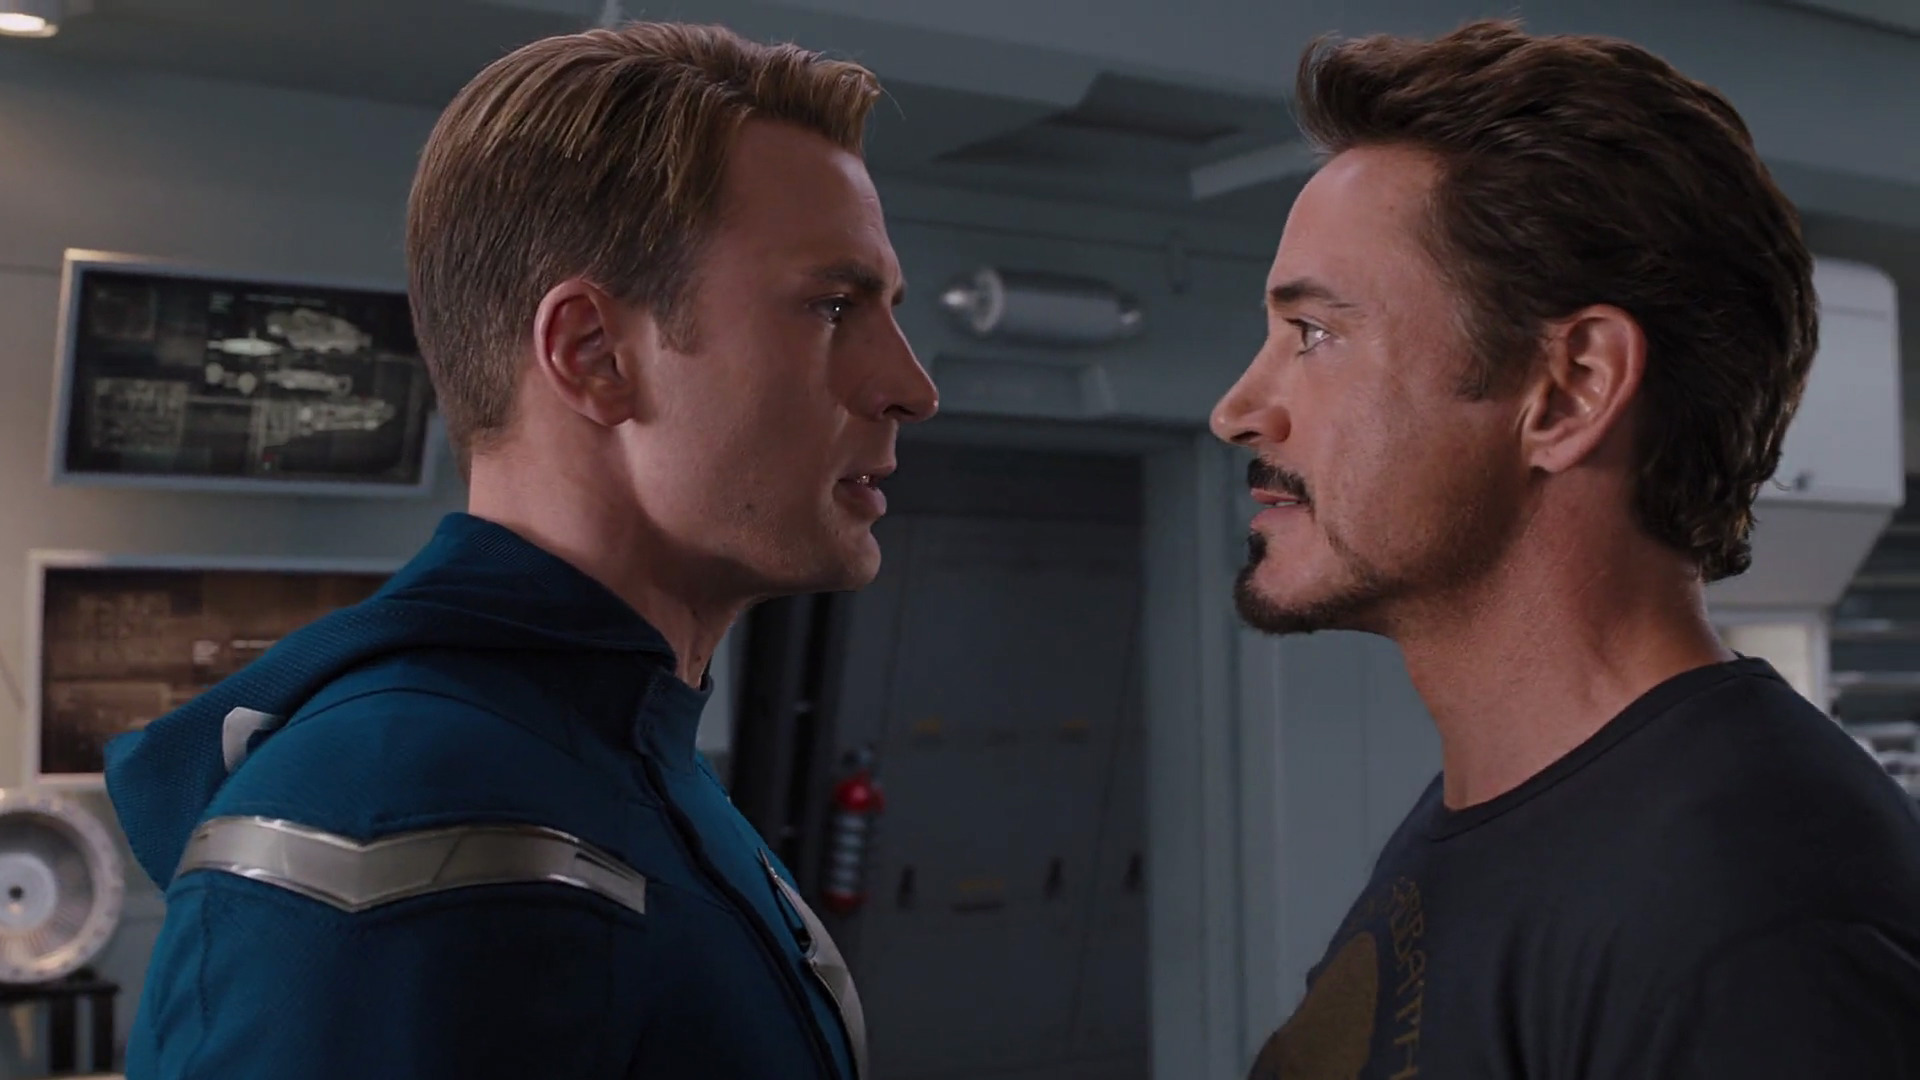 Cap has such a visible wig line in this movie. It's super distracting.